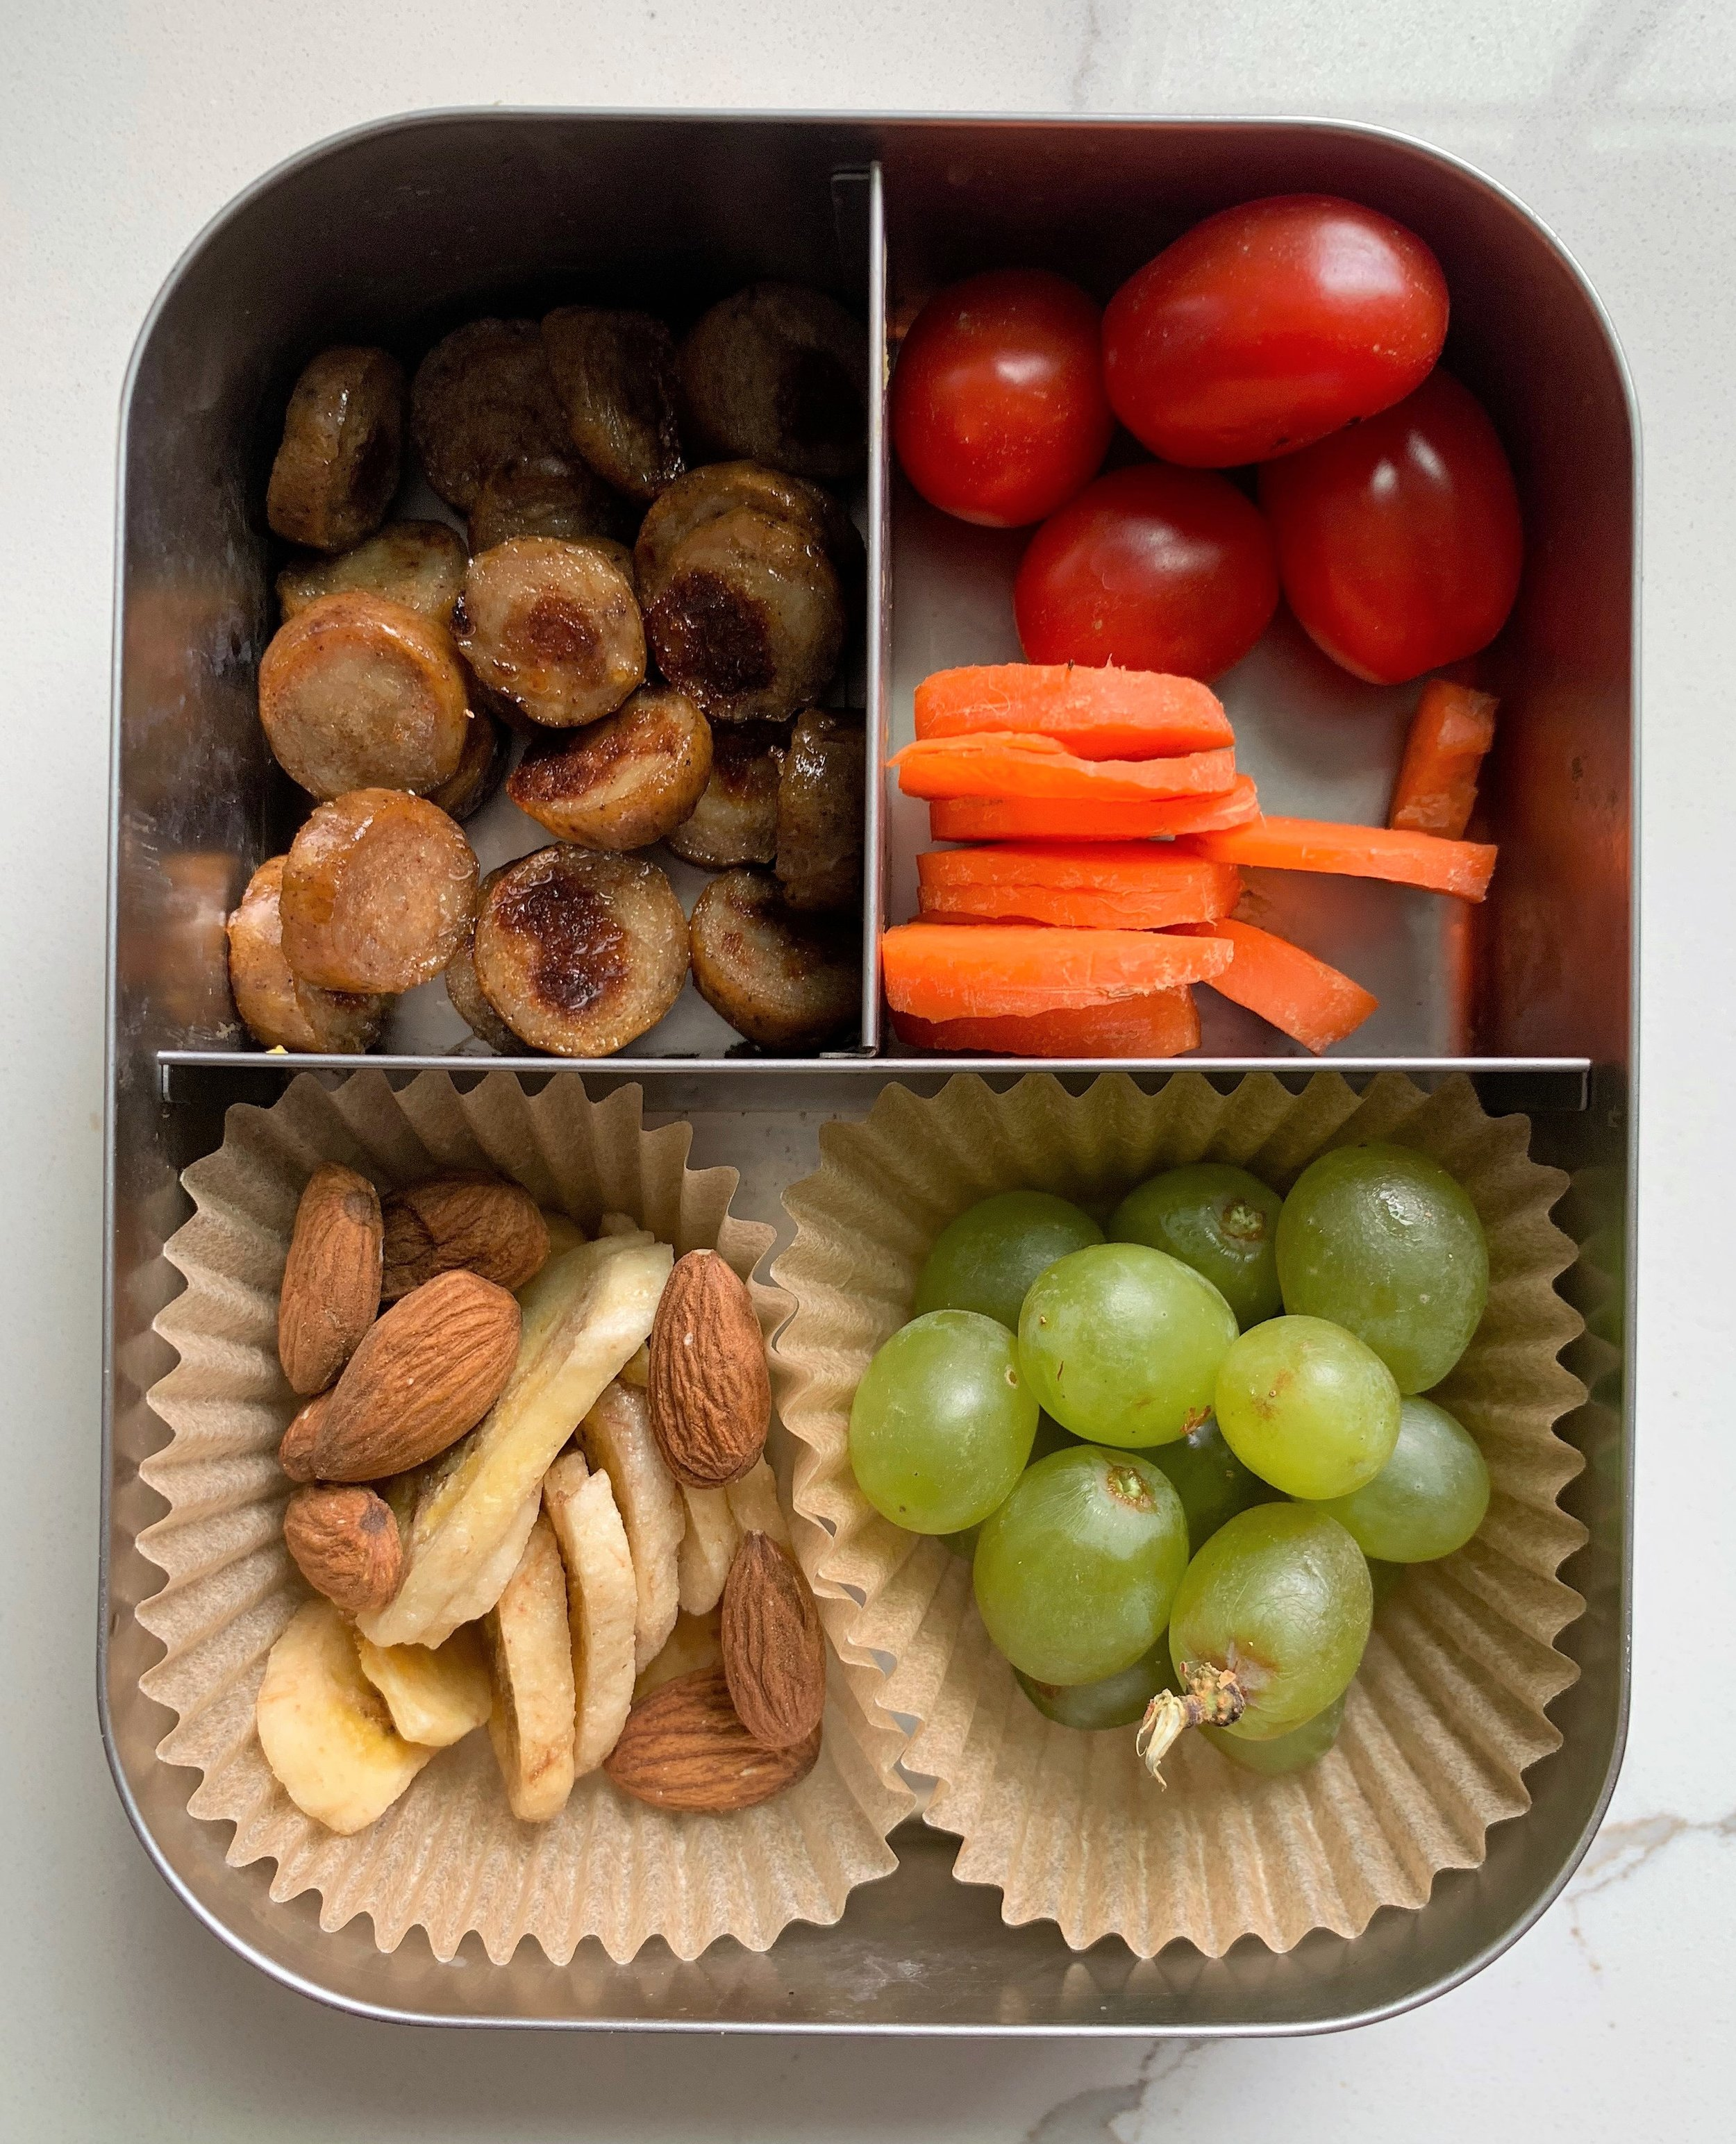 Top left: organic turkey hot dog  Top right: Carrots and tomatoes  Bottom left: banana chips and almonds  Bottom right: grapes